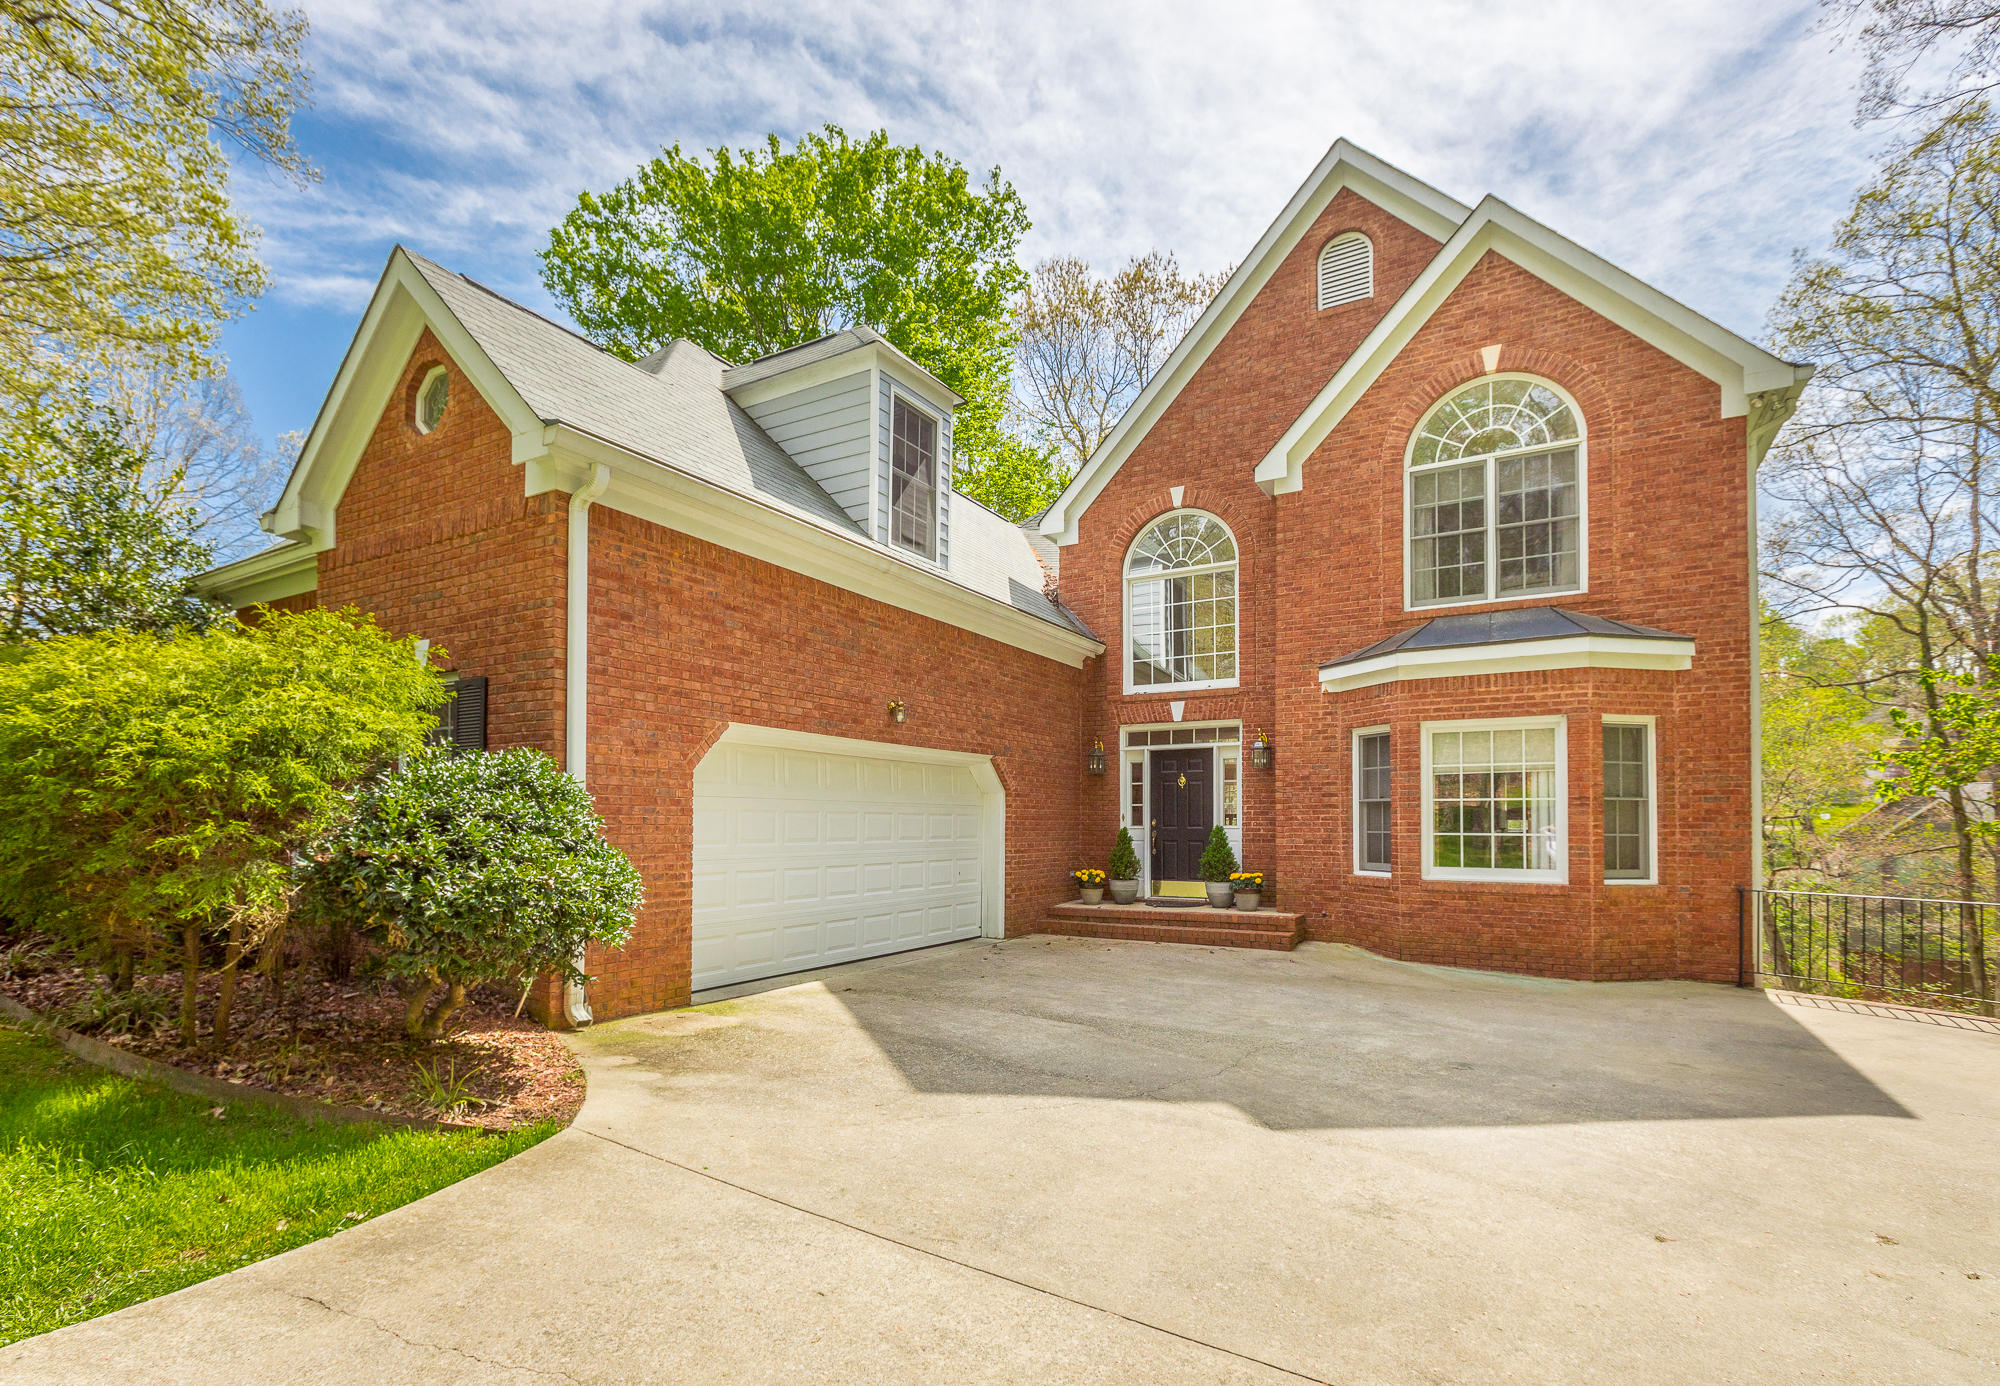 1814 Oak Cove Dr, Soddy Daisy, TN 37379